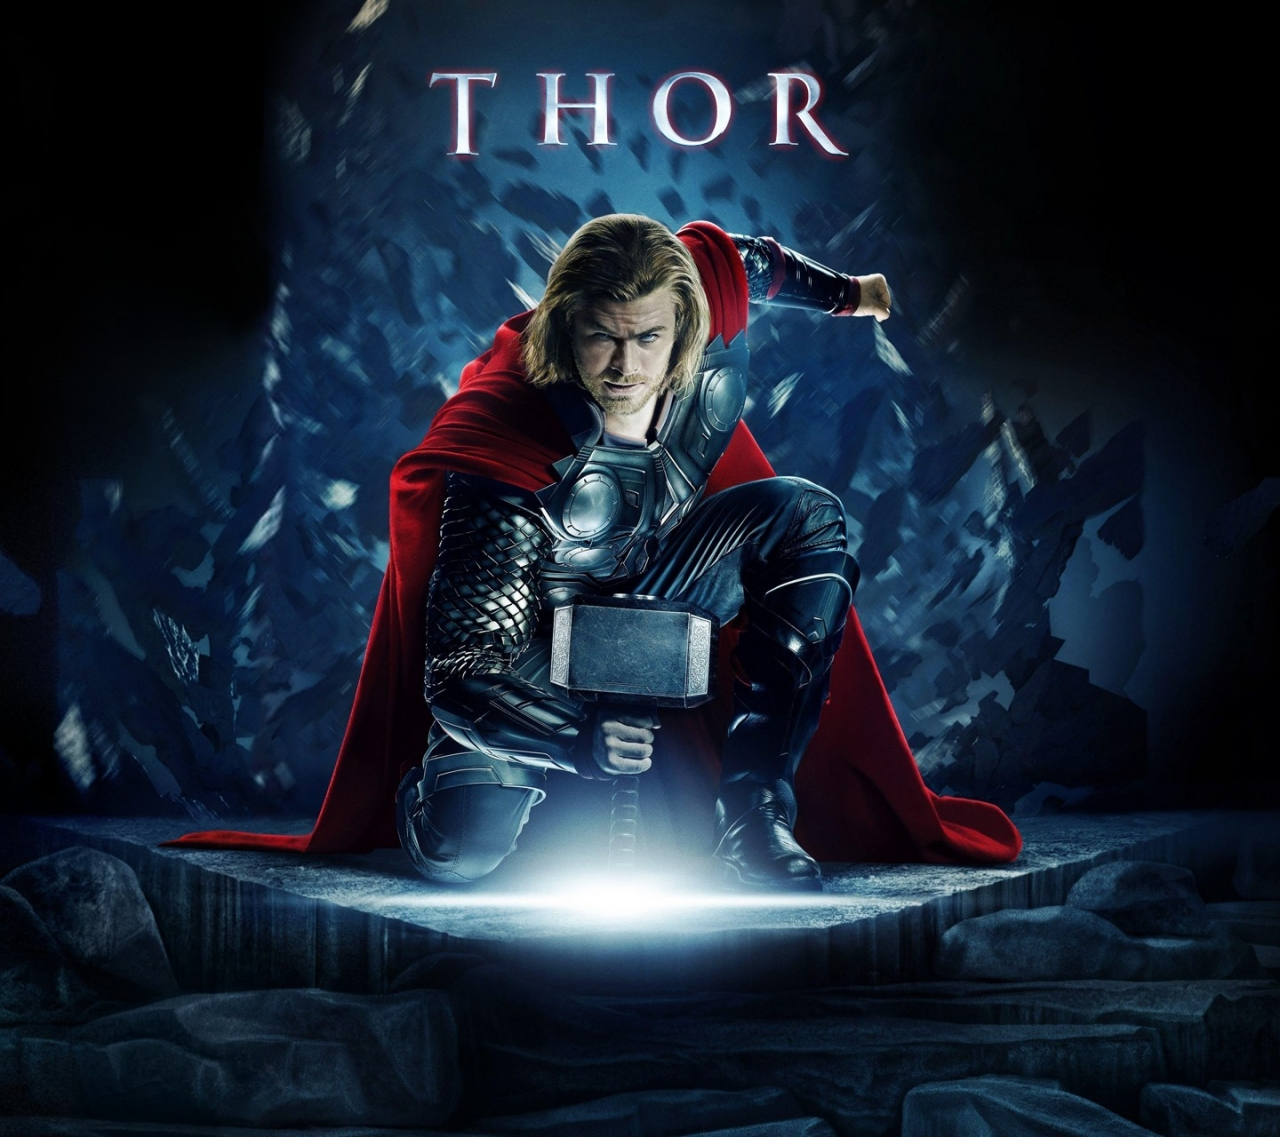 Thor poster HD